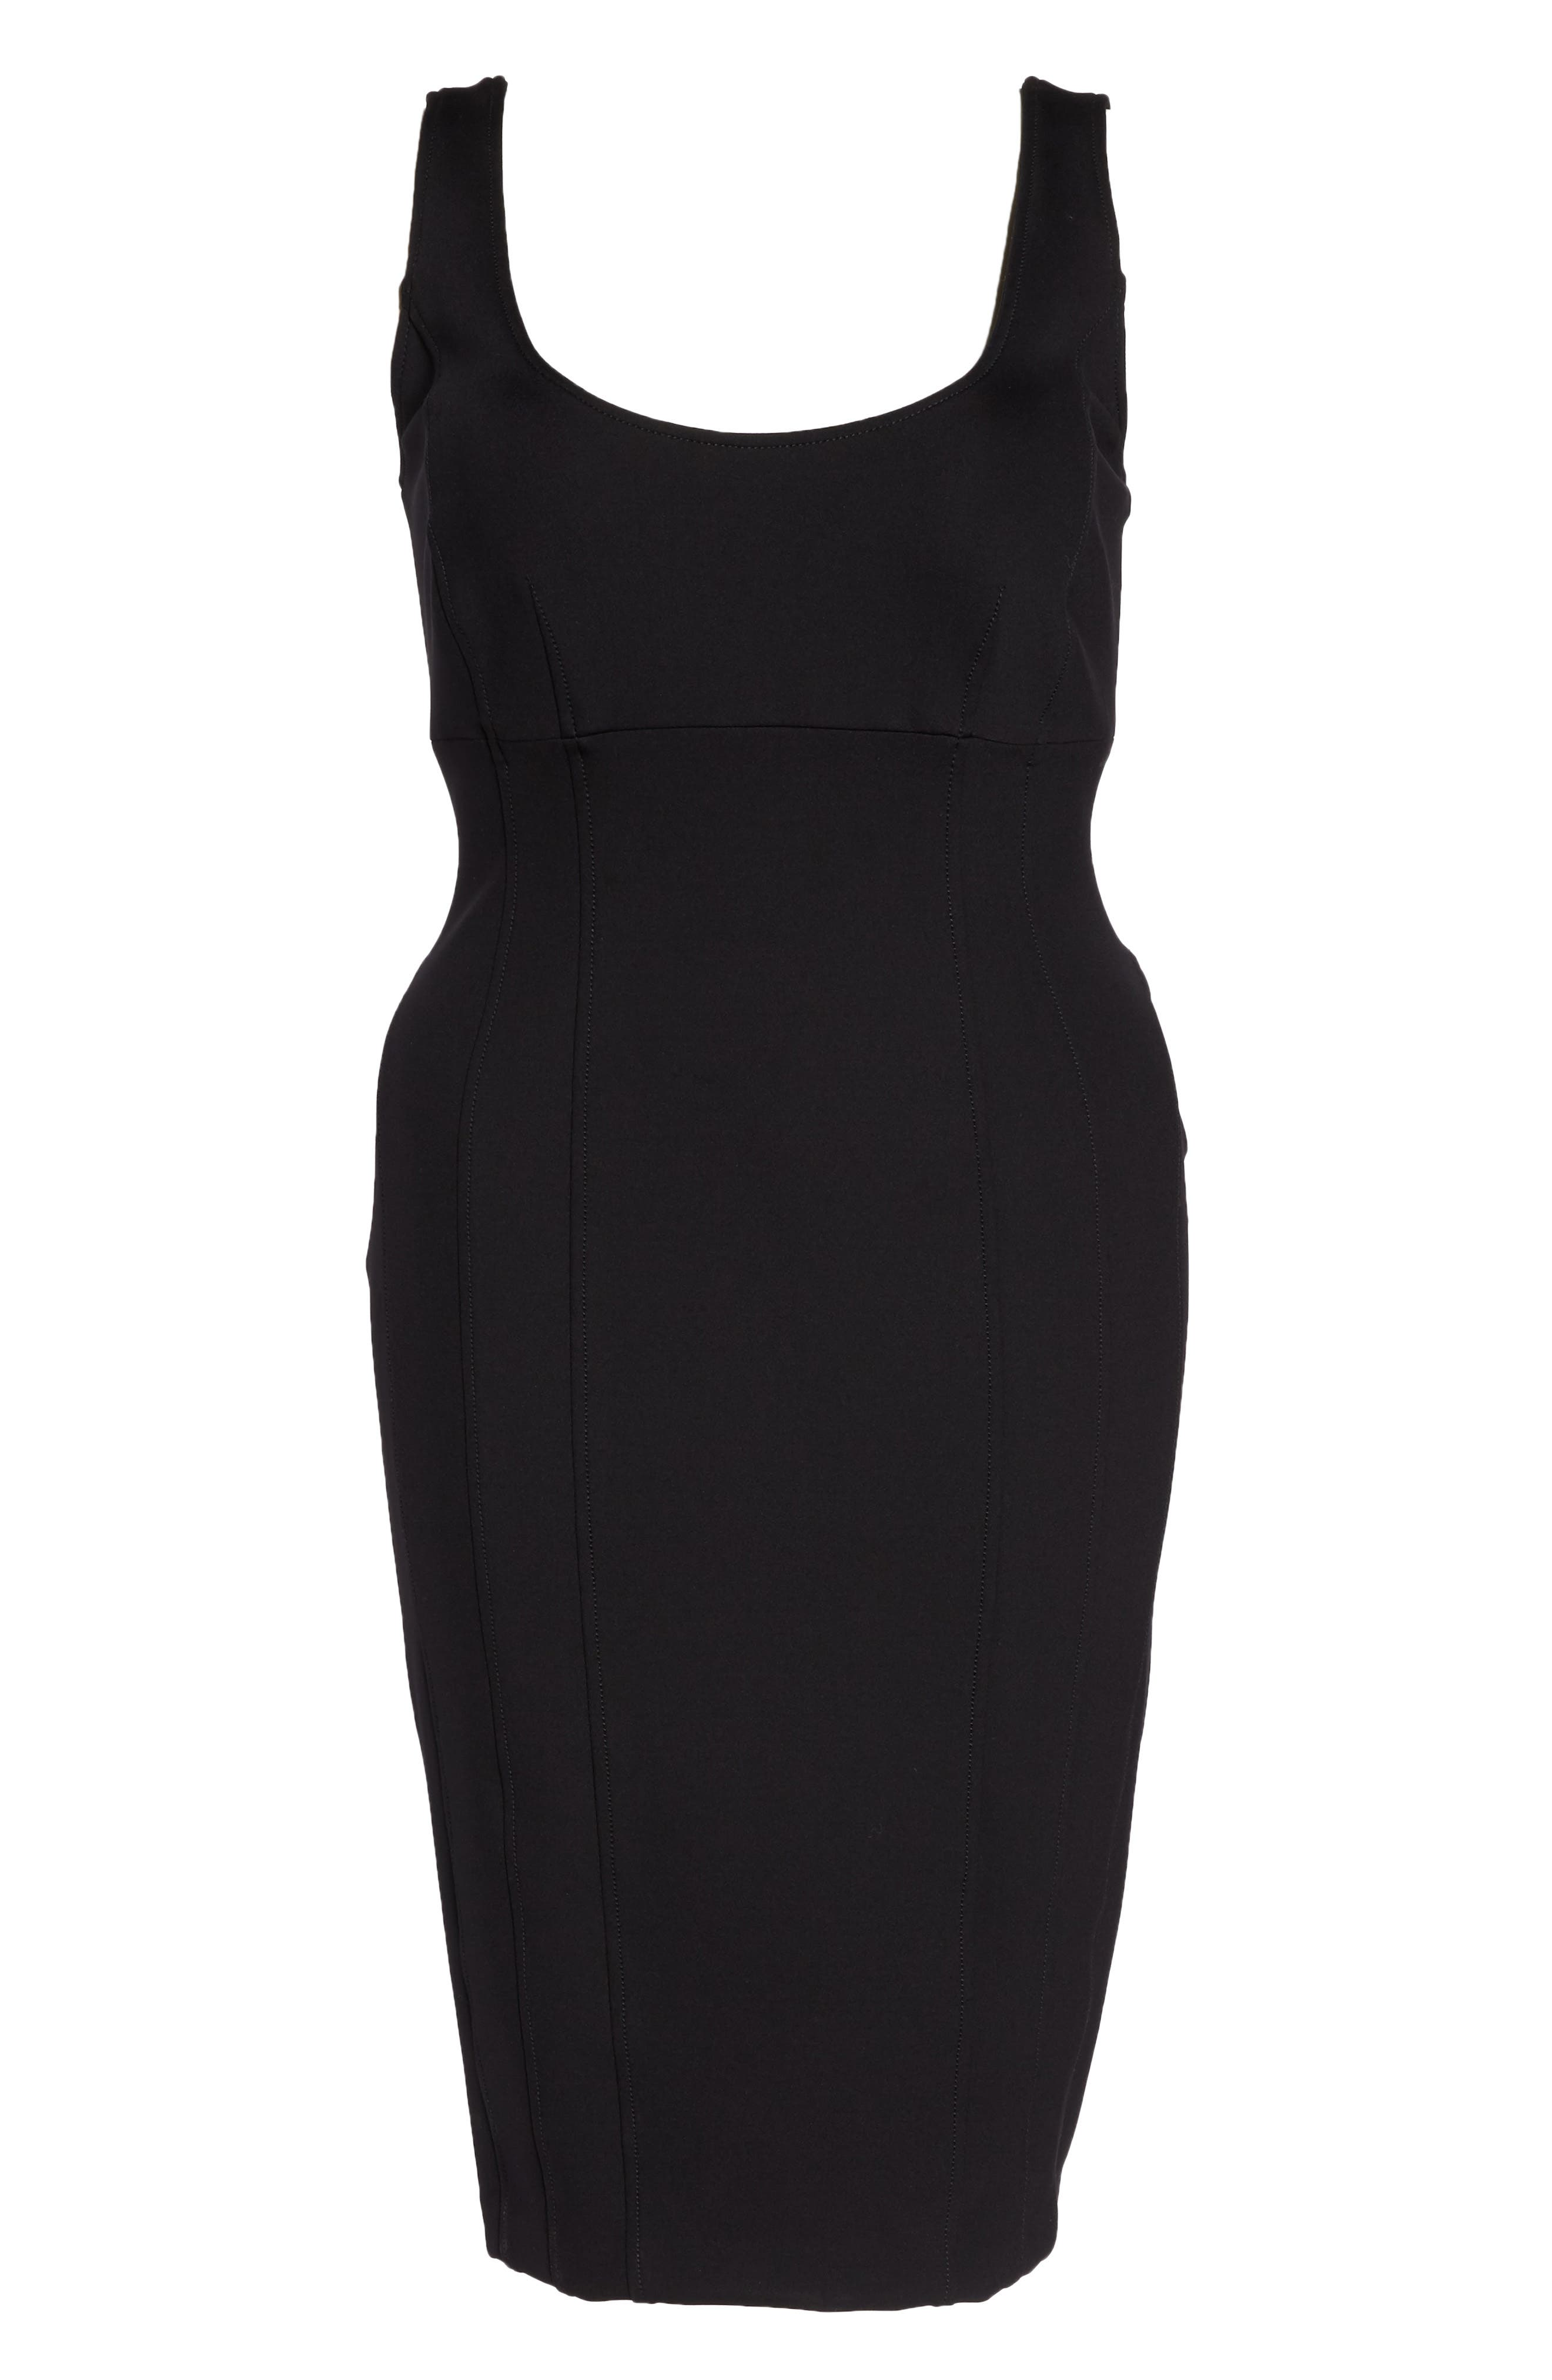 Ashley Graham x Marina Rinaldi Octopus Jersey Tube Dress (Regular & Plus Size)